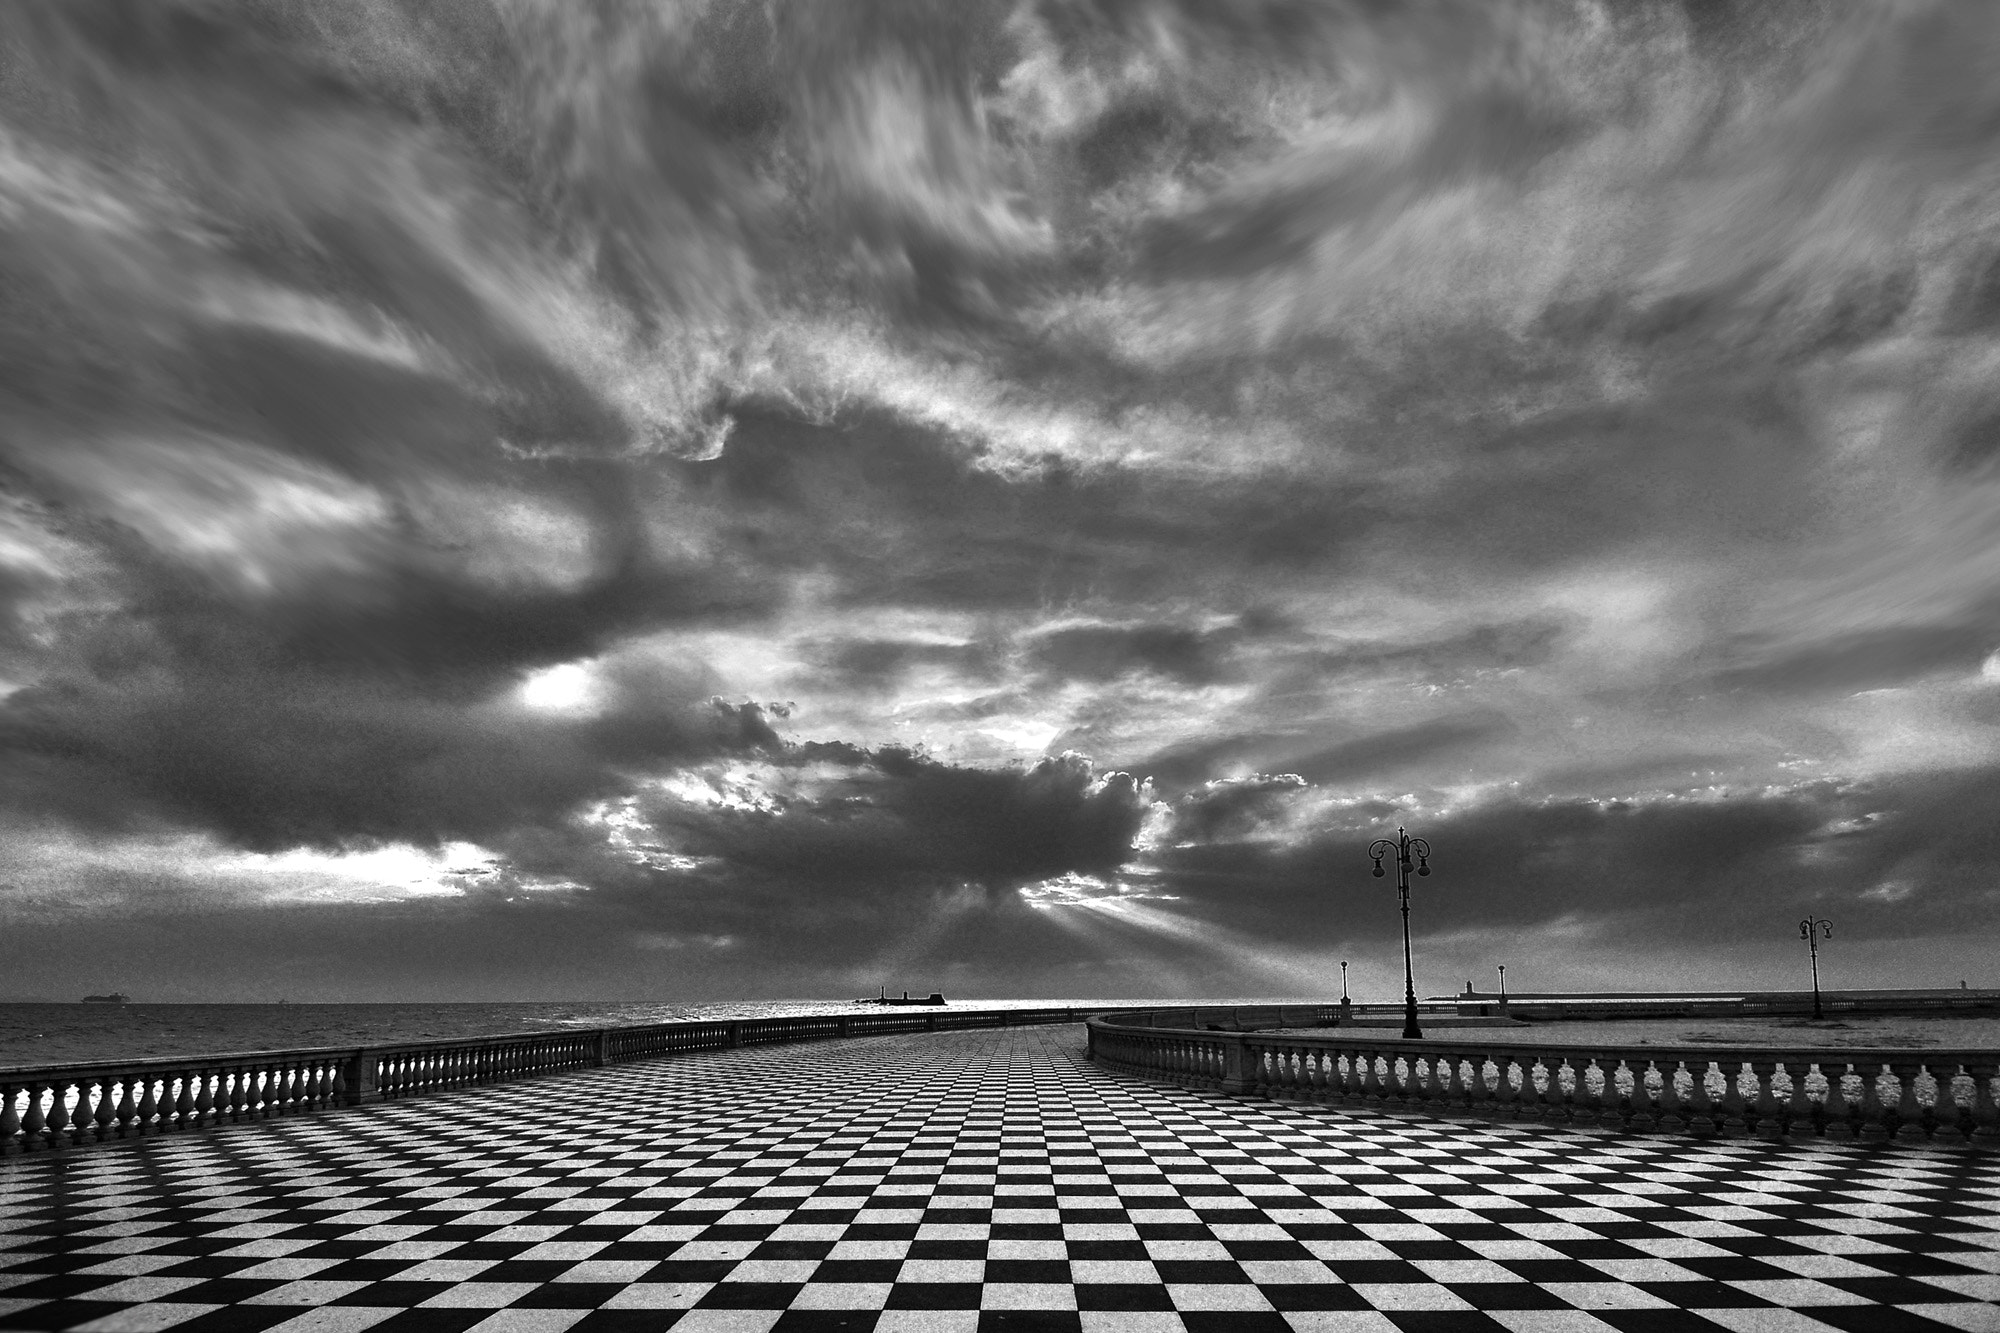 Photograph Chess & clouds by Manfredi Freddy Adamo on 500px